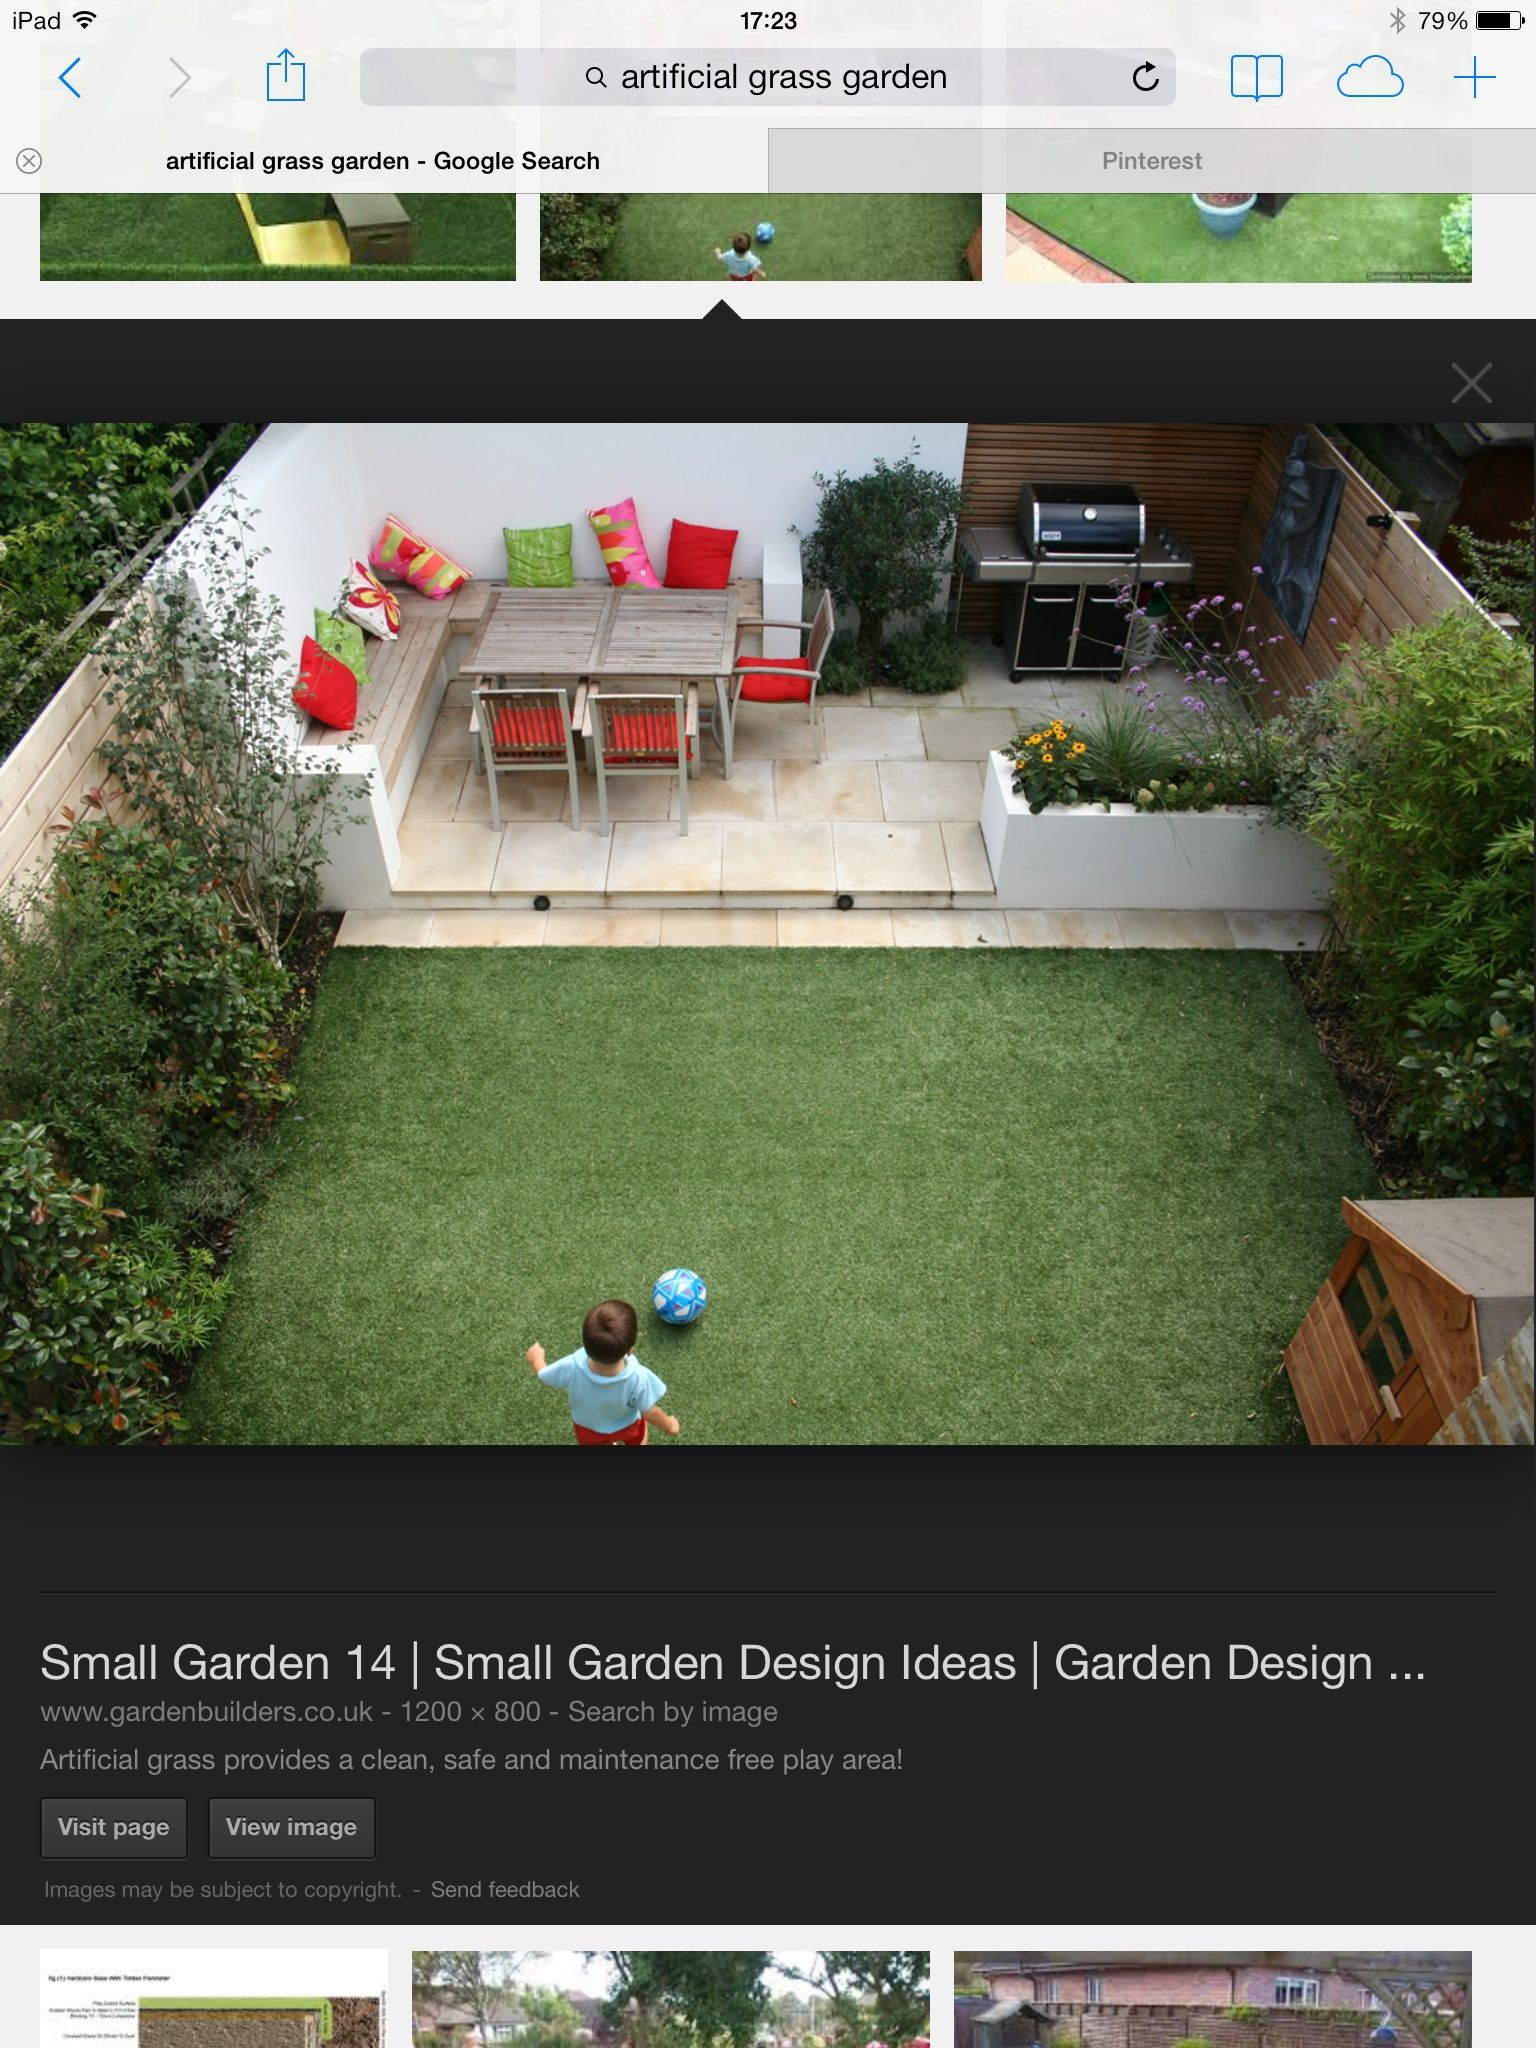 artificial lawn grass paved area back yard pinterest lawn